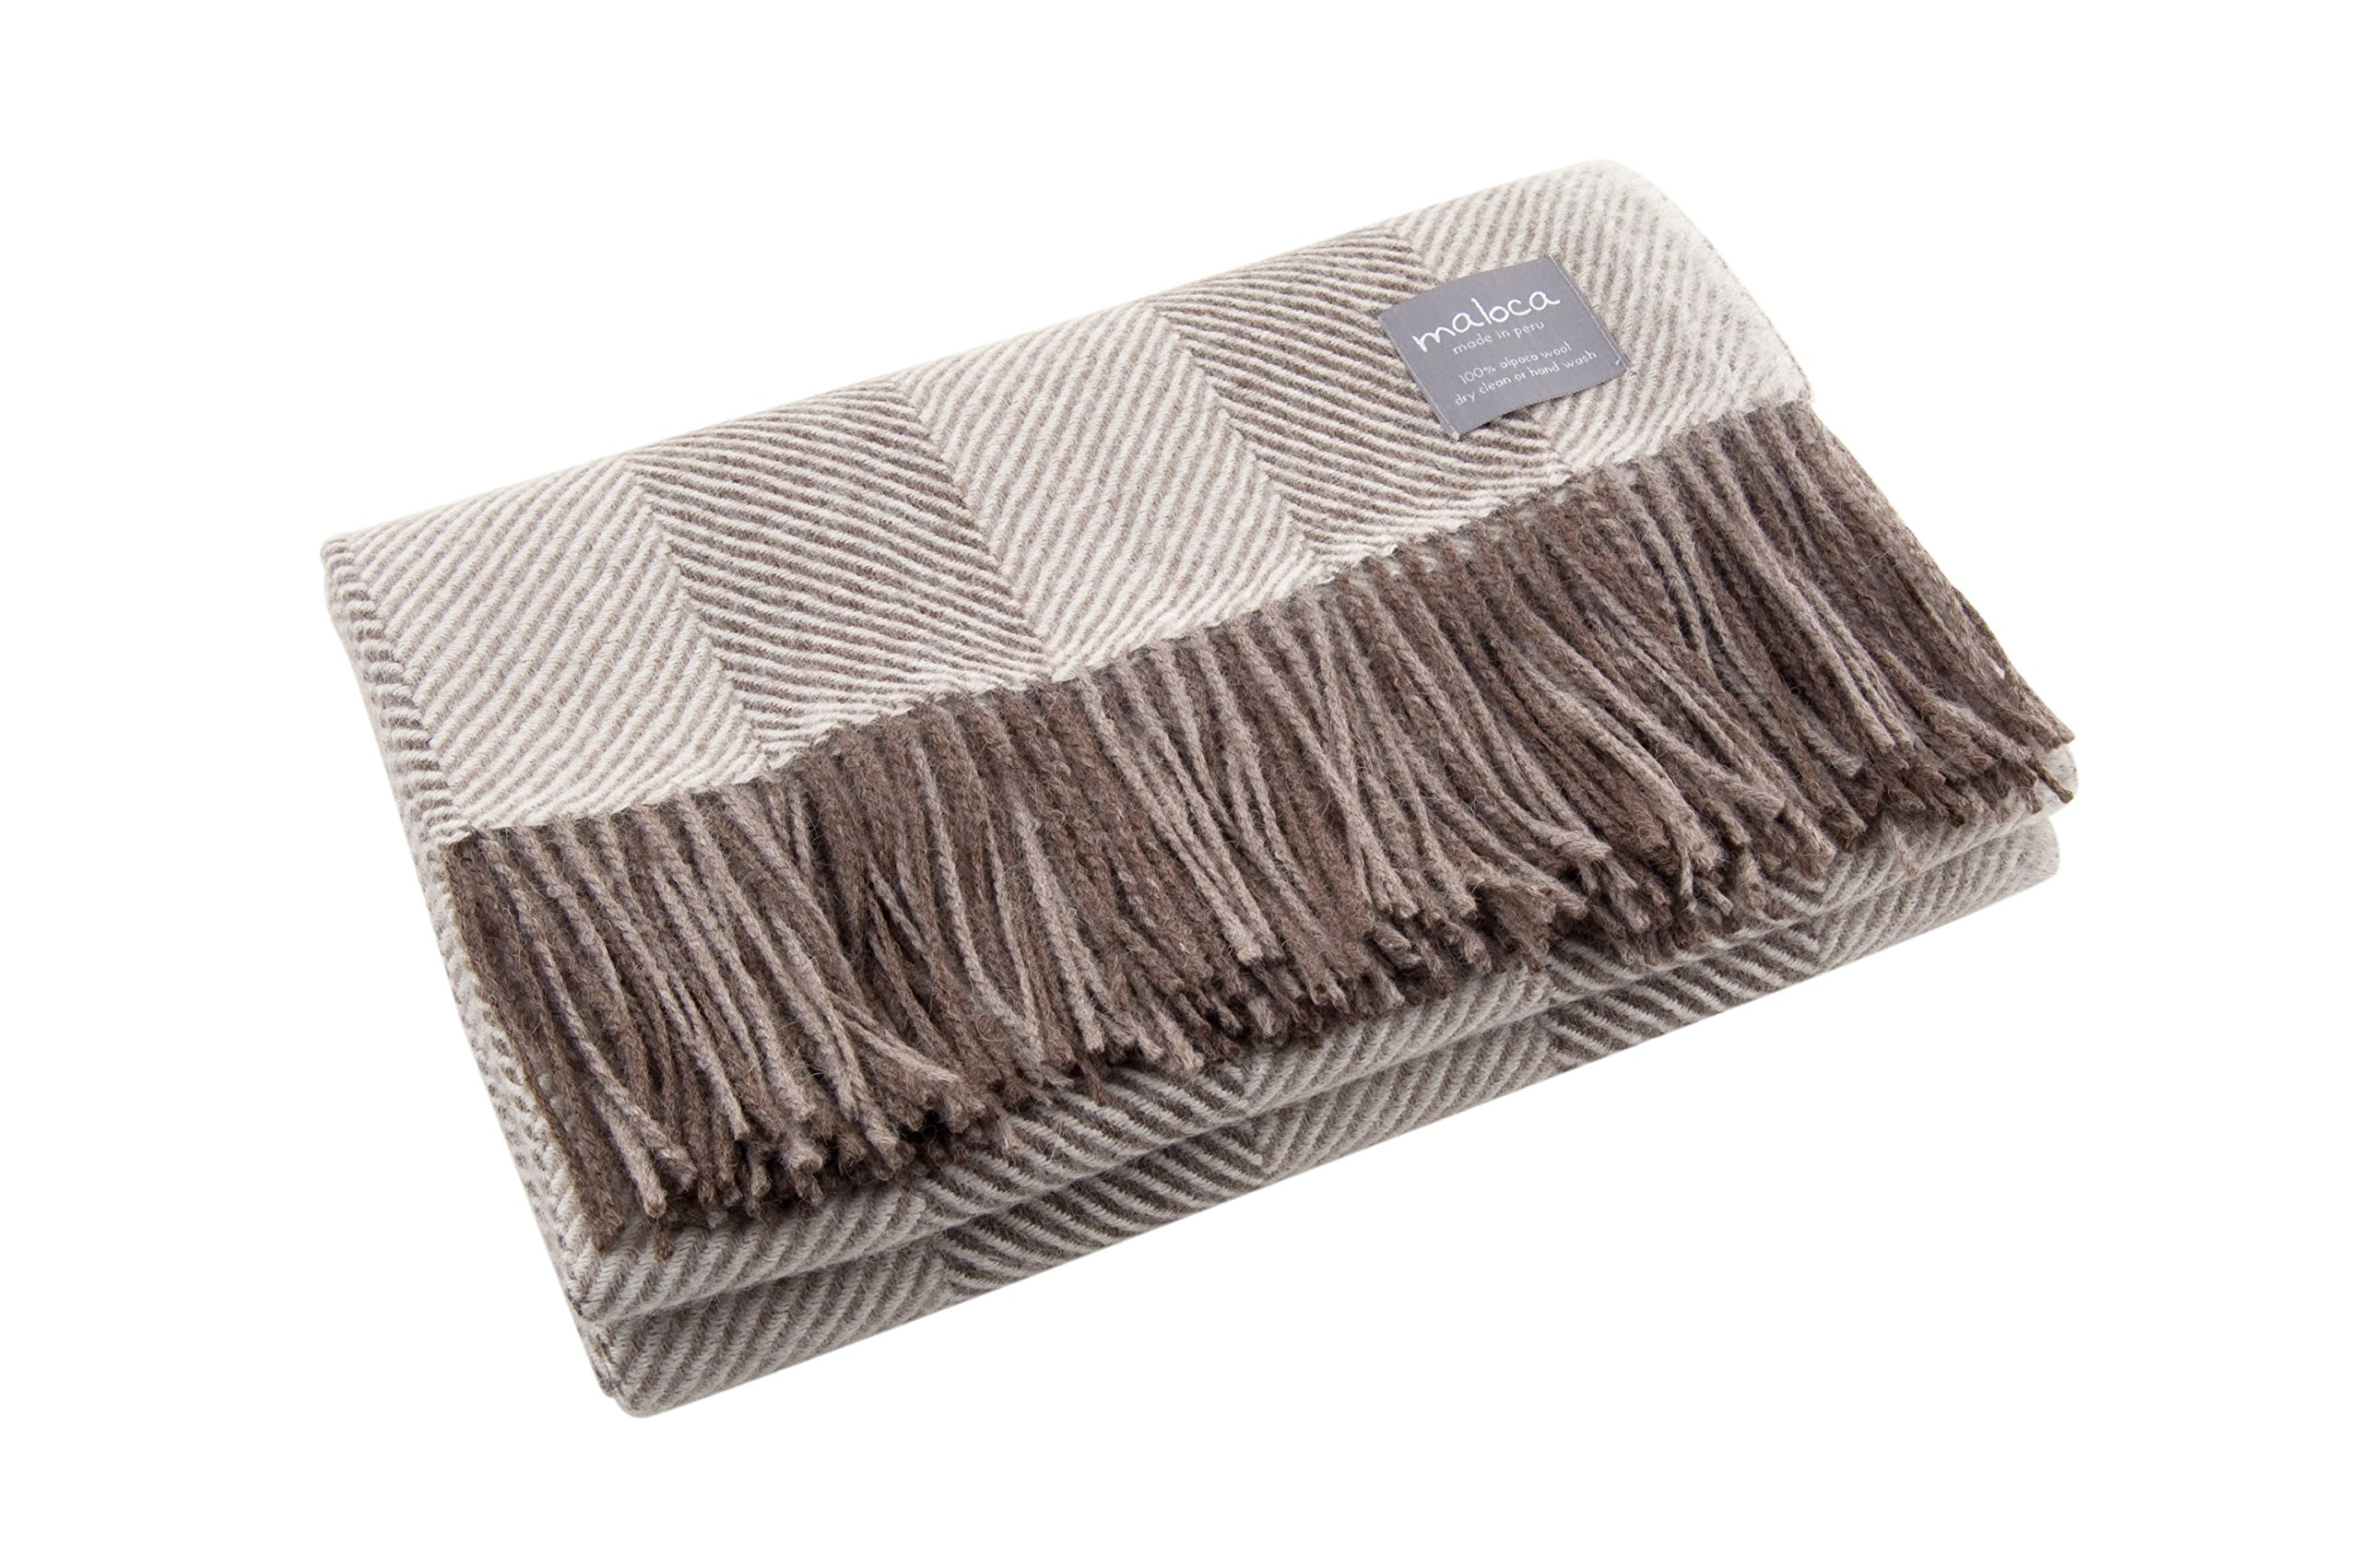 Maloca Alpaca Throw Blanket - 100% Premium Alpaca Wool Brown Heather Herringbone, Ethically Sourced, The Perfect Gift for Any Age or Occasion. Limited Production